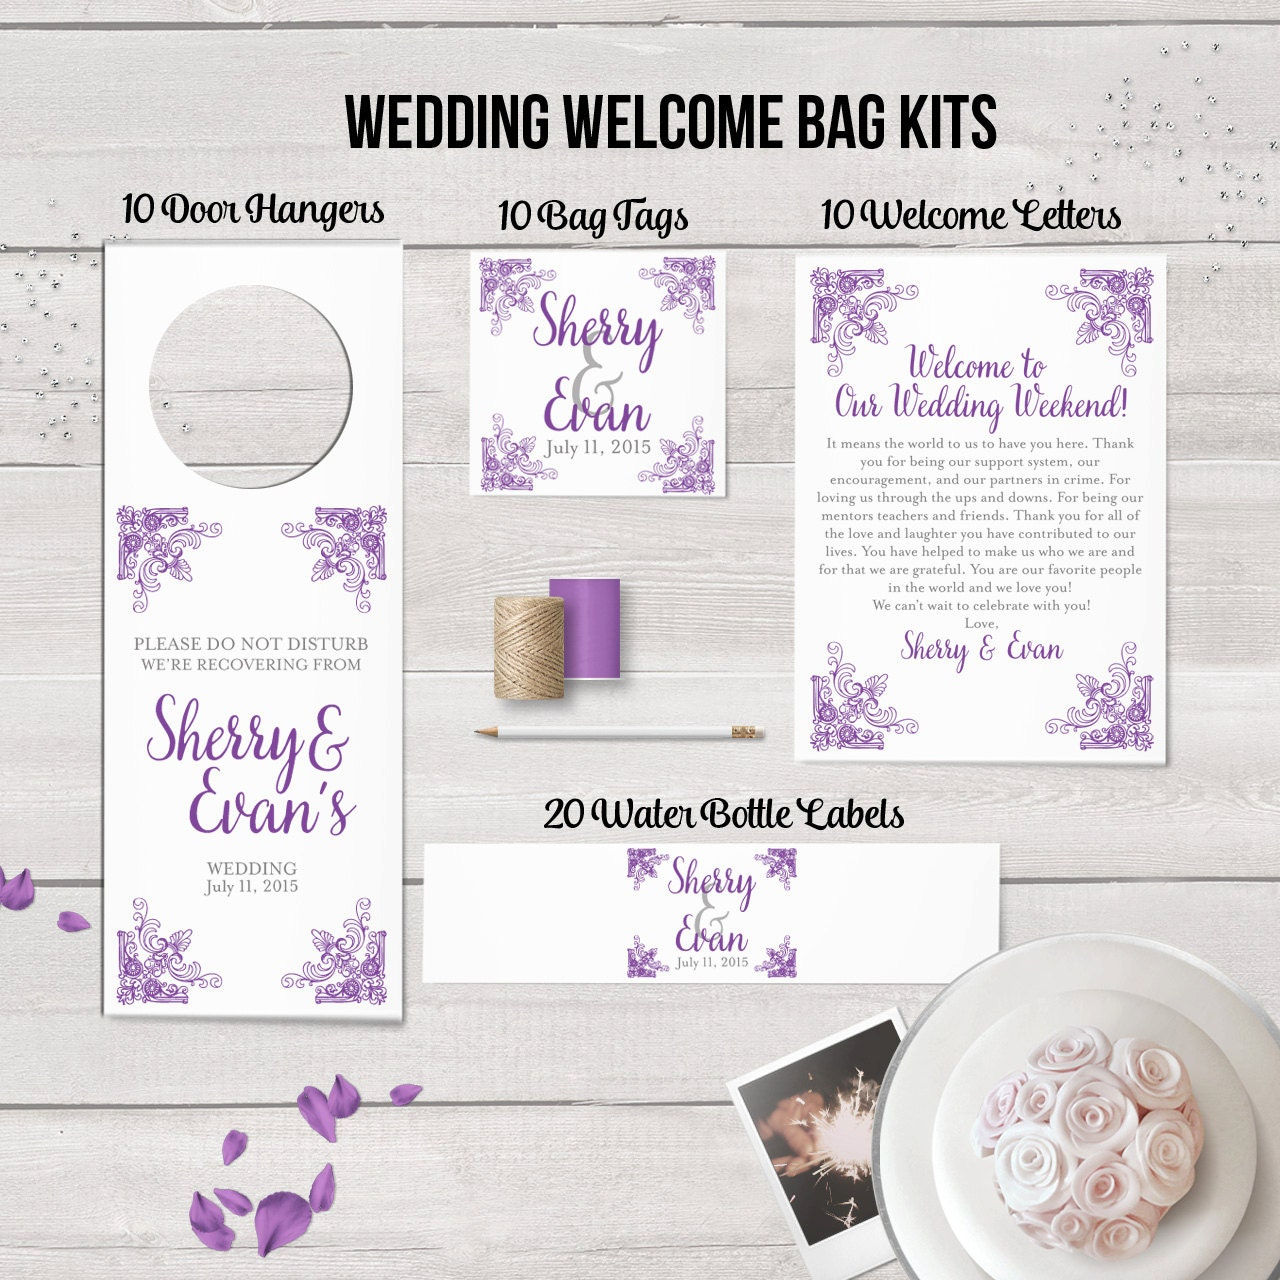 Wedding Hotel Gift Bag Message : Wedding Welcome Bag Kit Wedding Favors Welcome Bags Water